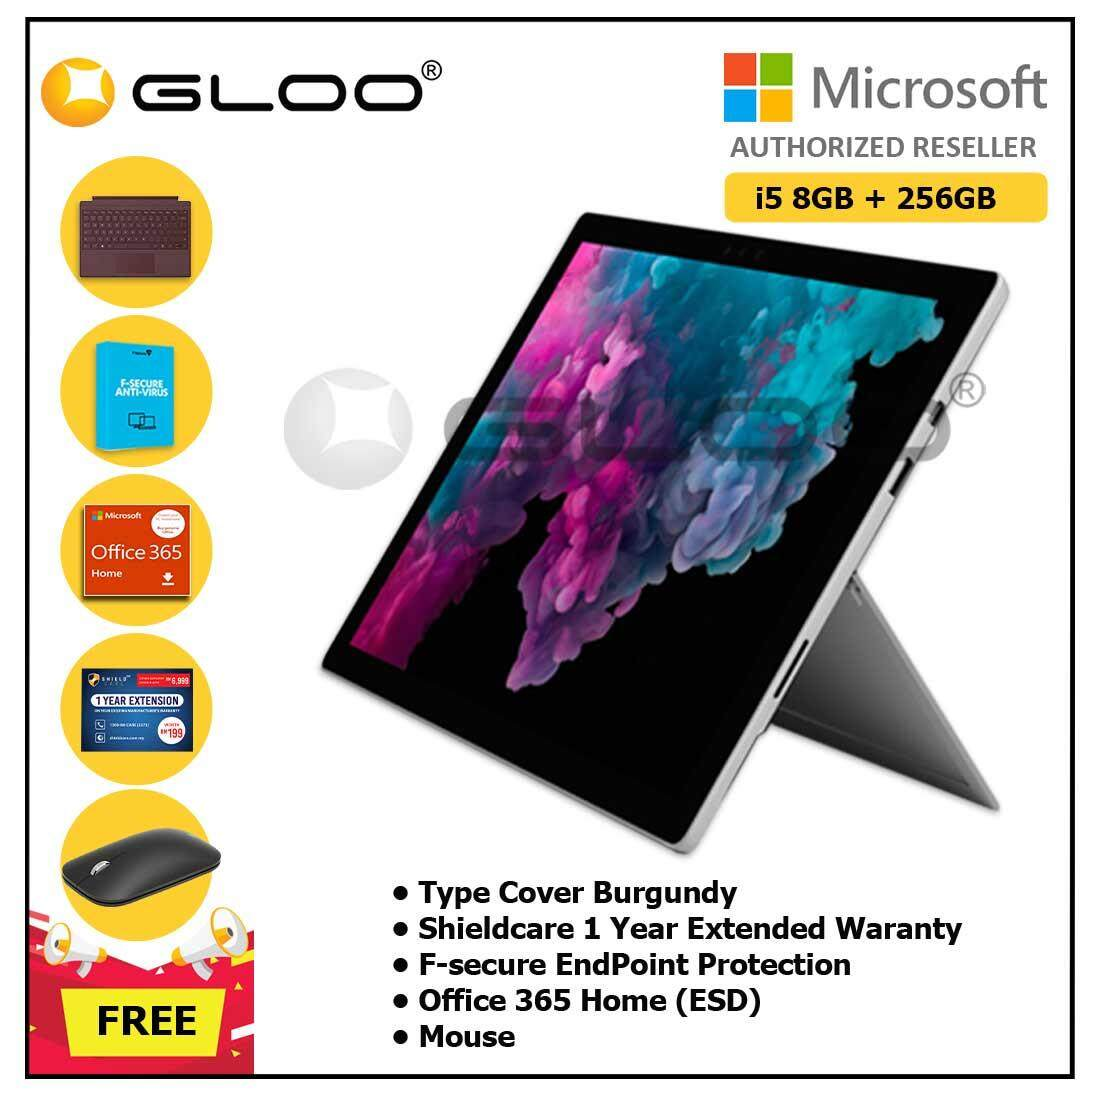 Microsoft Surface Pro 6 Core i5/8GB RAM - 256GB + Type Cover Burgundy + Shieldcare 1 Year Extended Warranty + F-Secure End Point Protection + Office 365 Home (ESD) + Mouse Malaysia